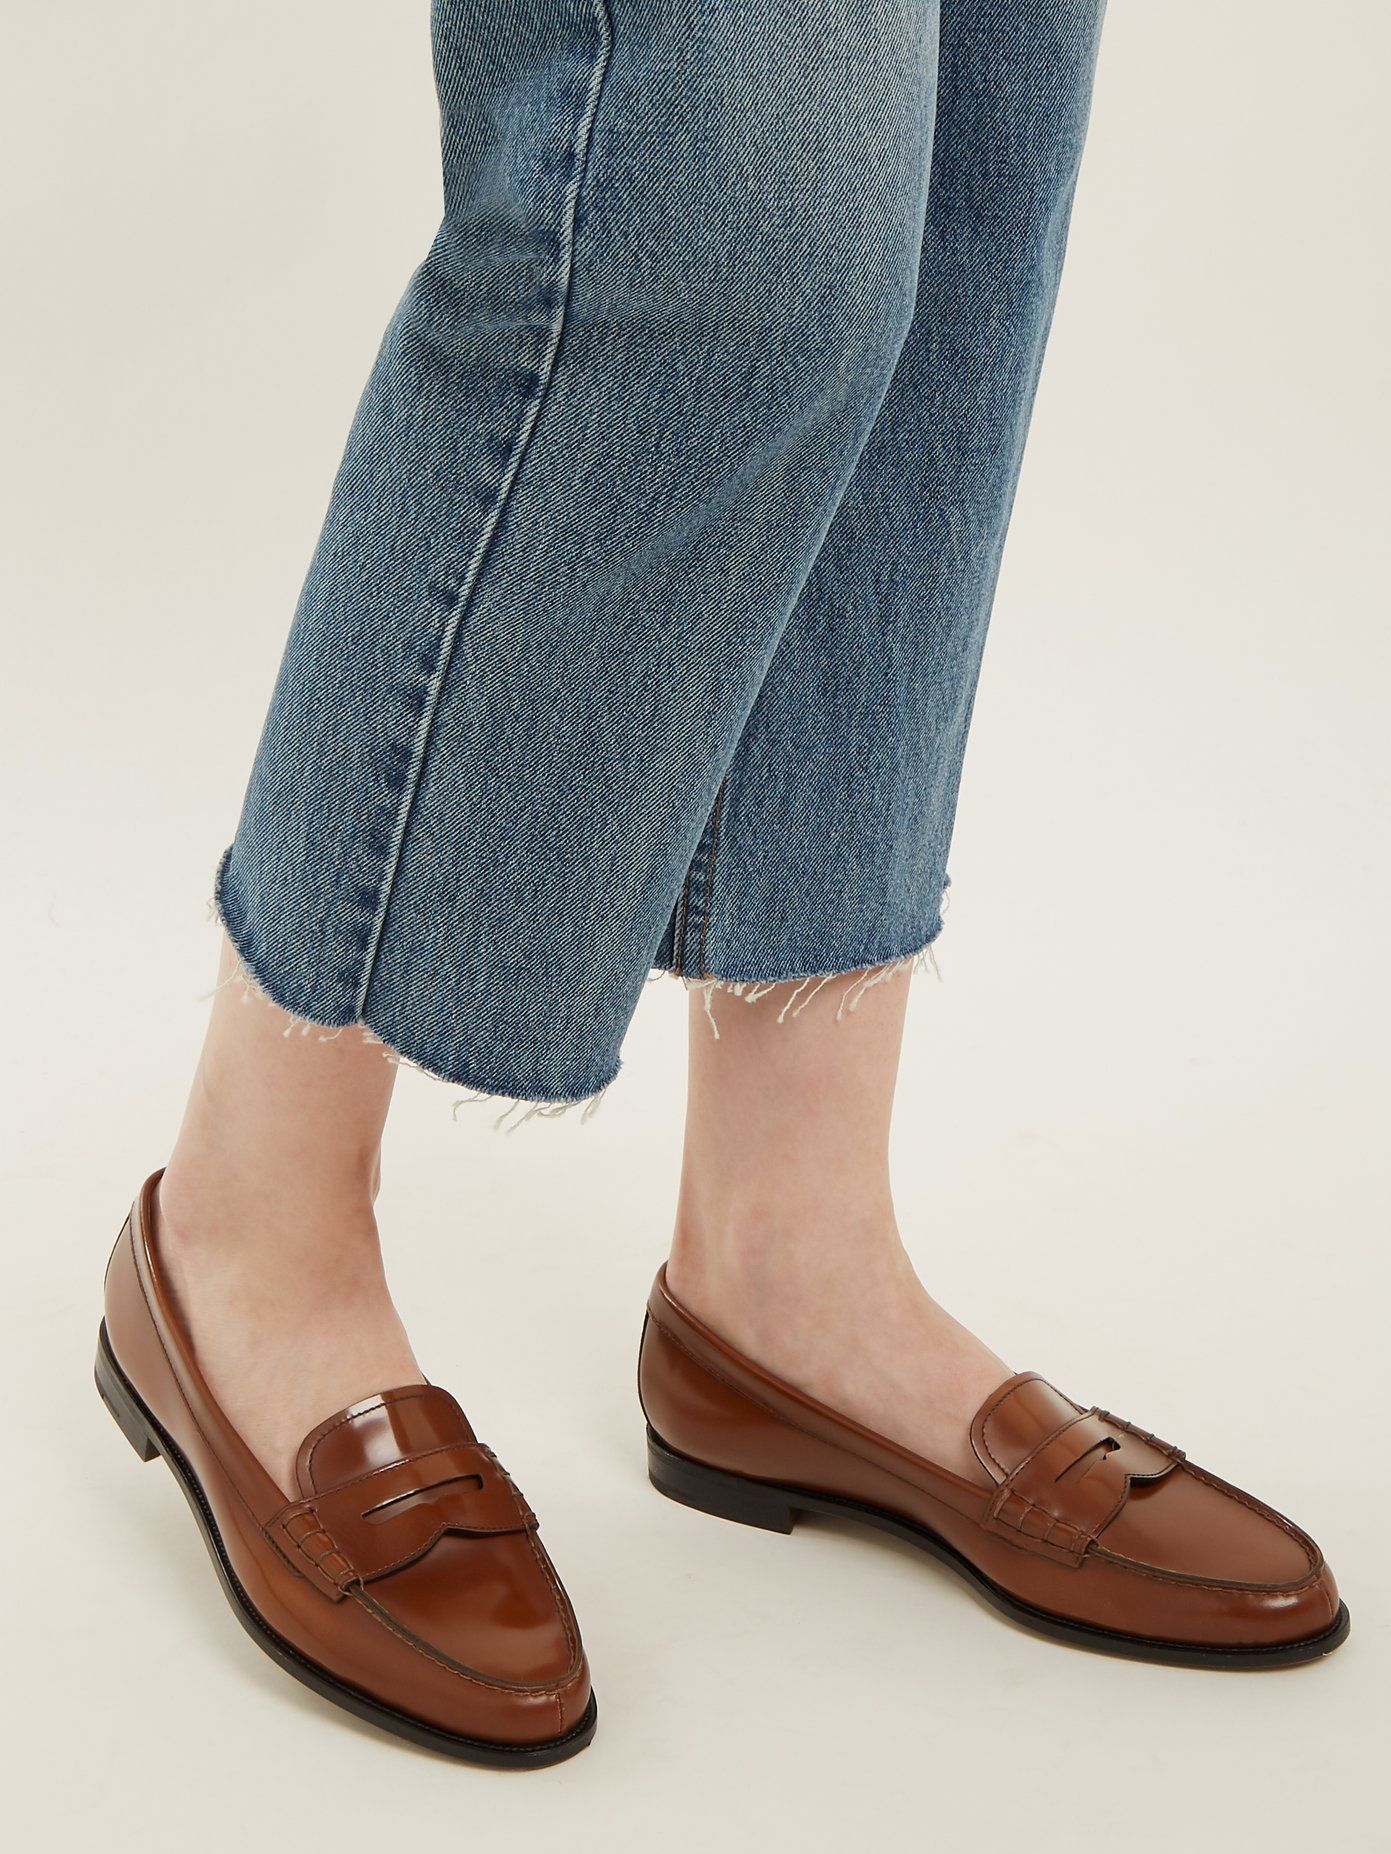 b8f0c436ac8 Kara leather penny loafers